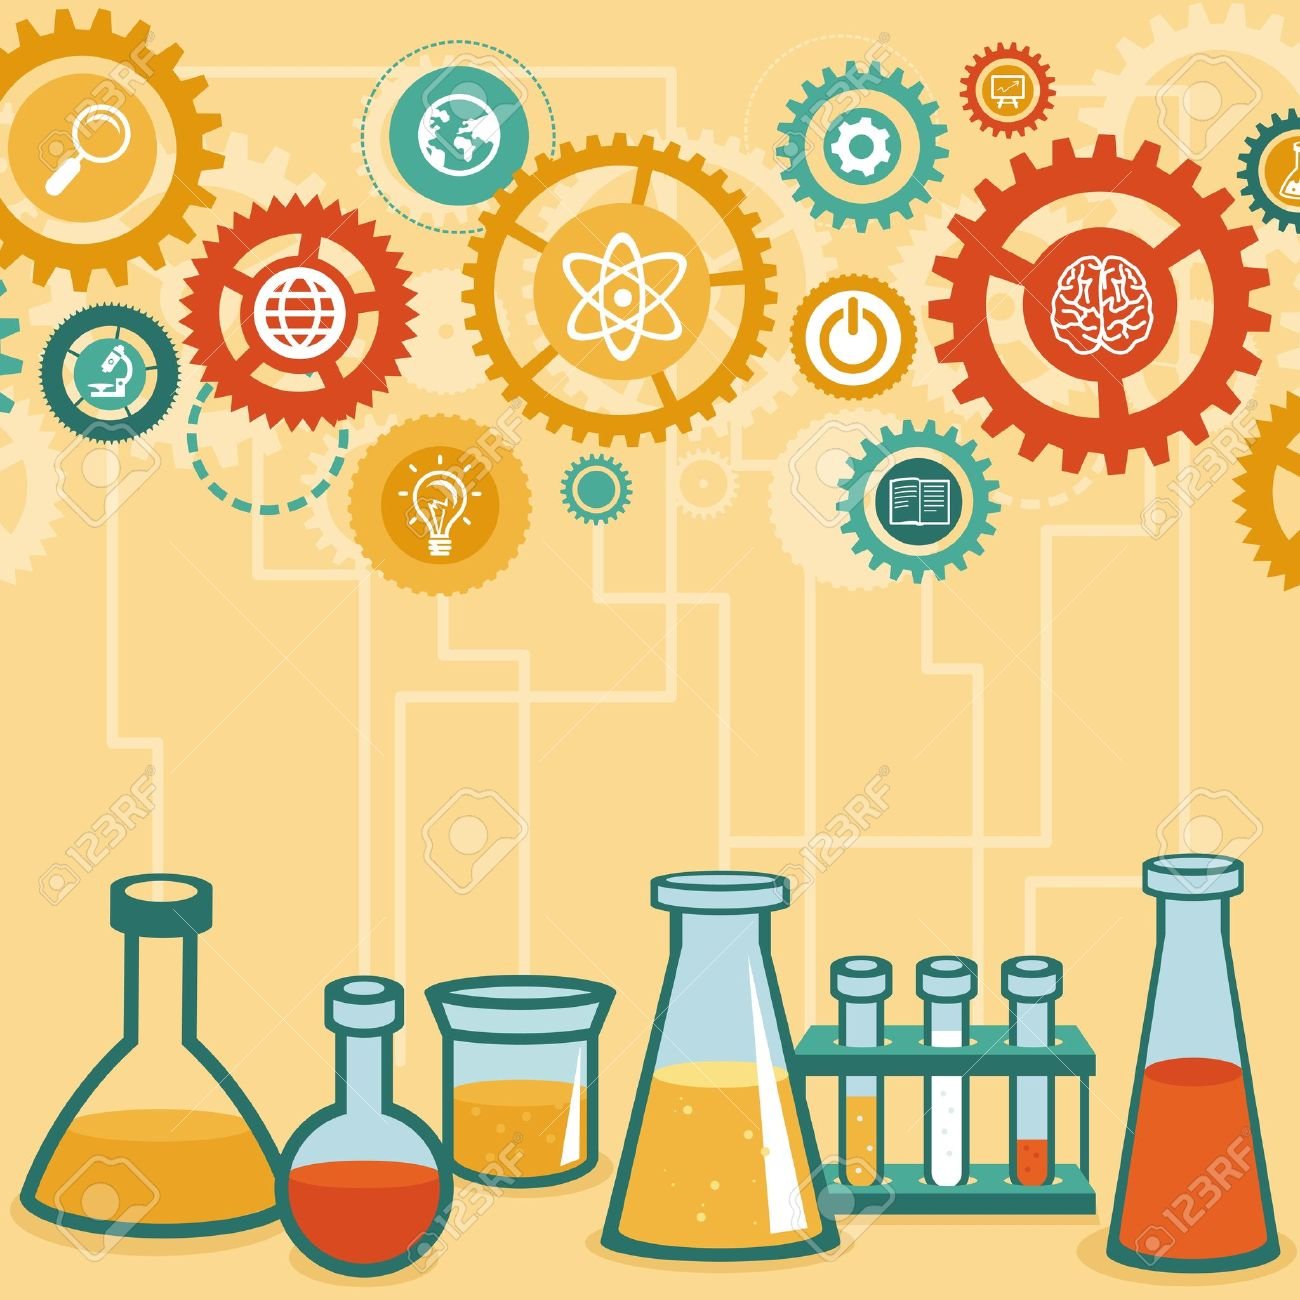 Vector concept - chemistry and science research - design elements for infographic in flat style Stock Vector - 21887615